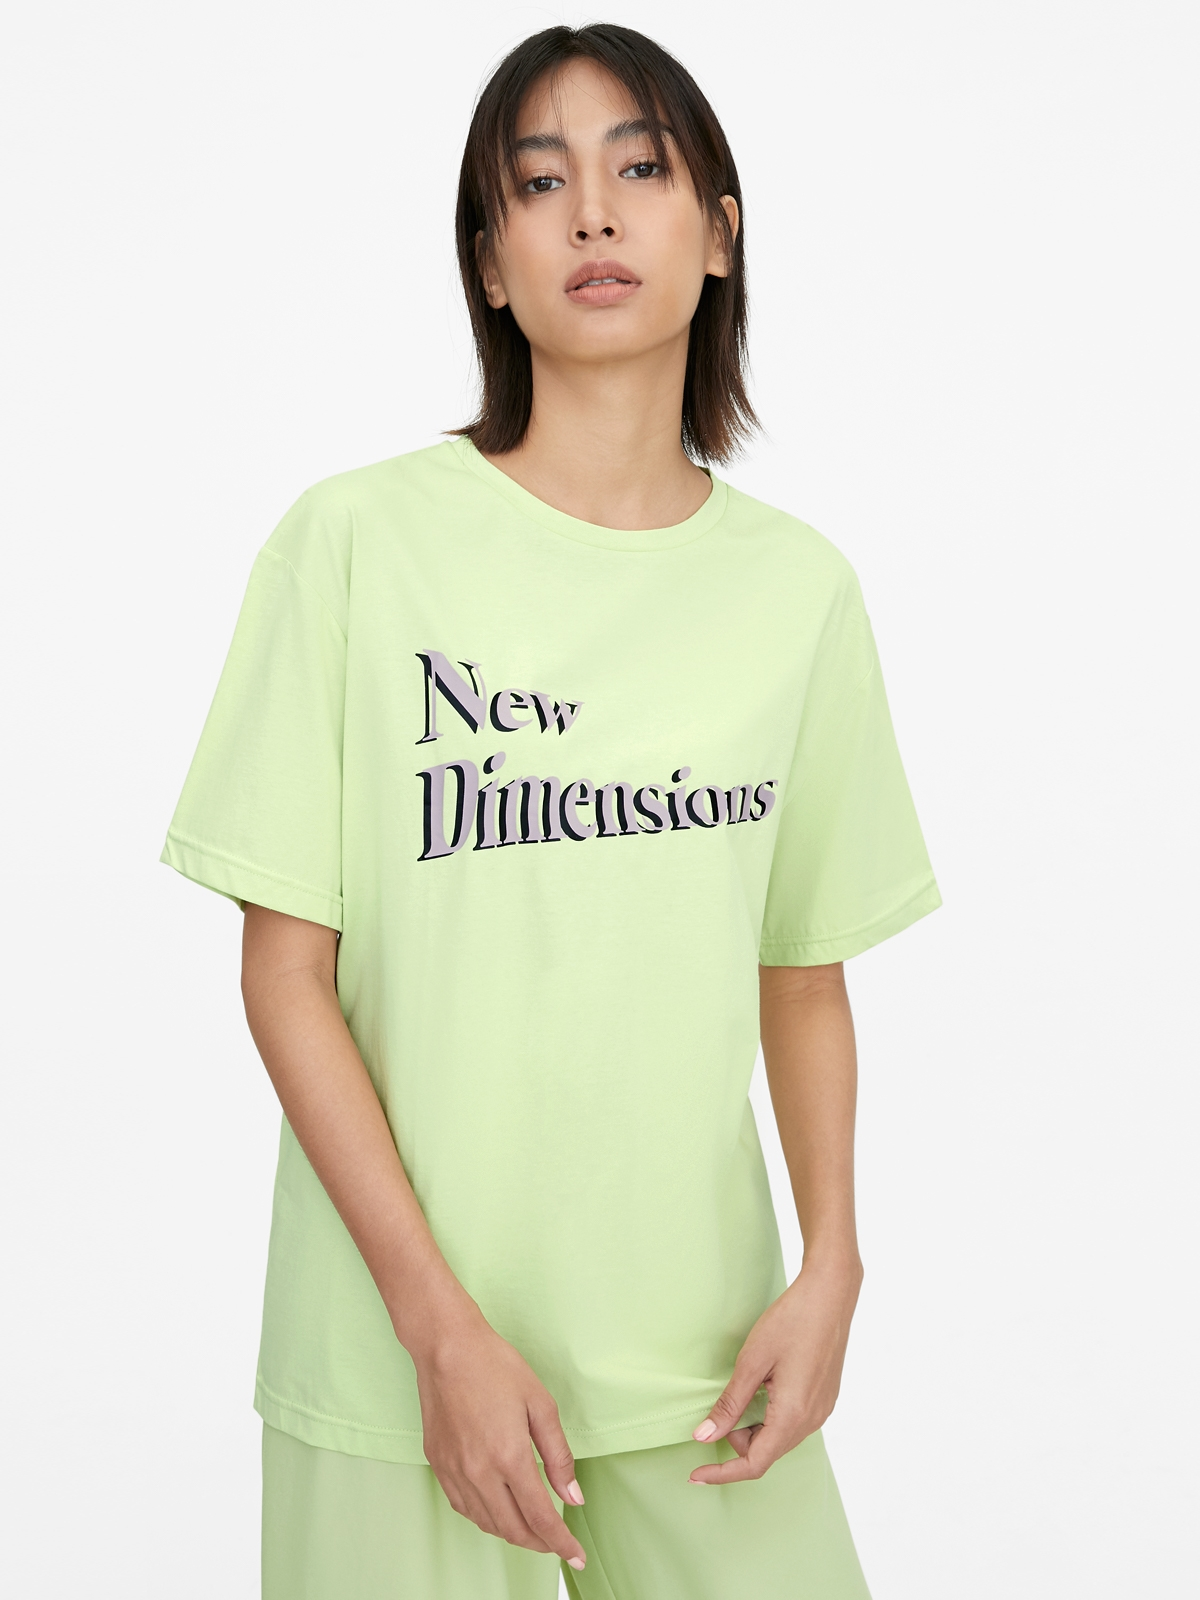 New Dimensions Graphic Tee Green